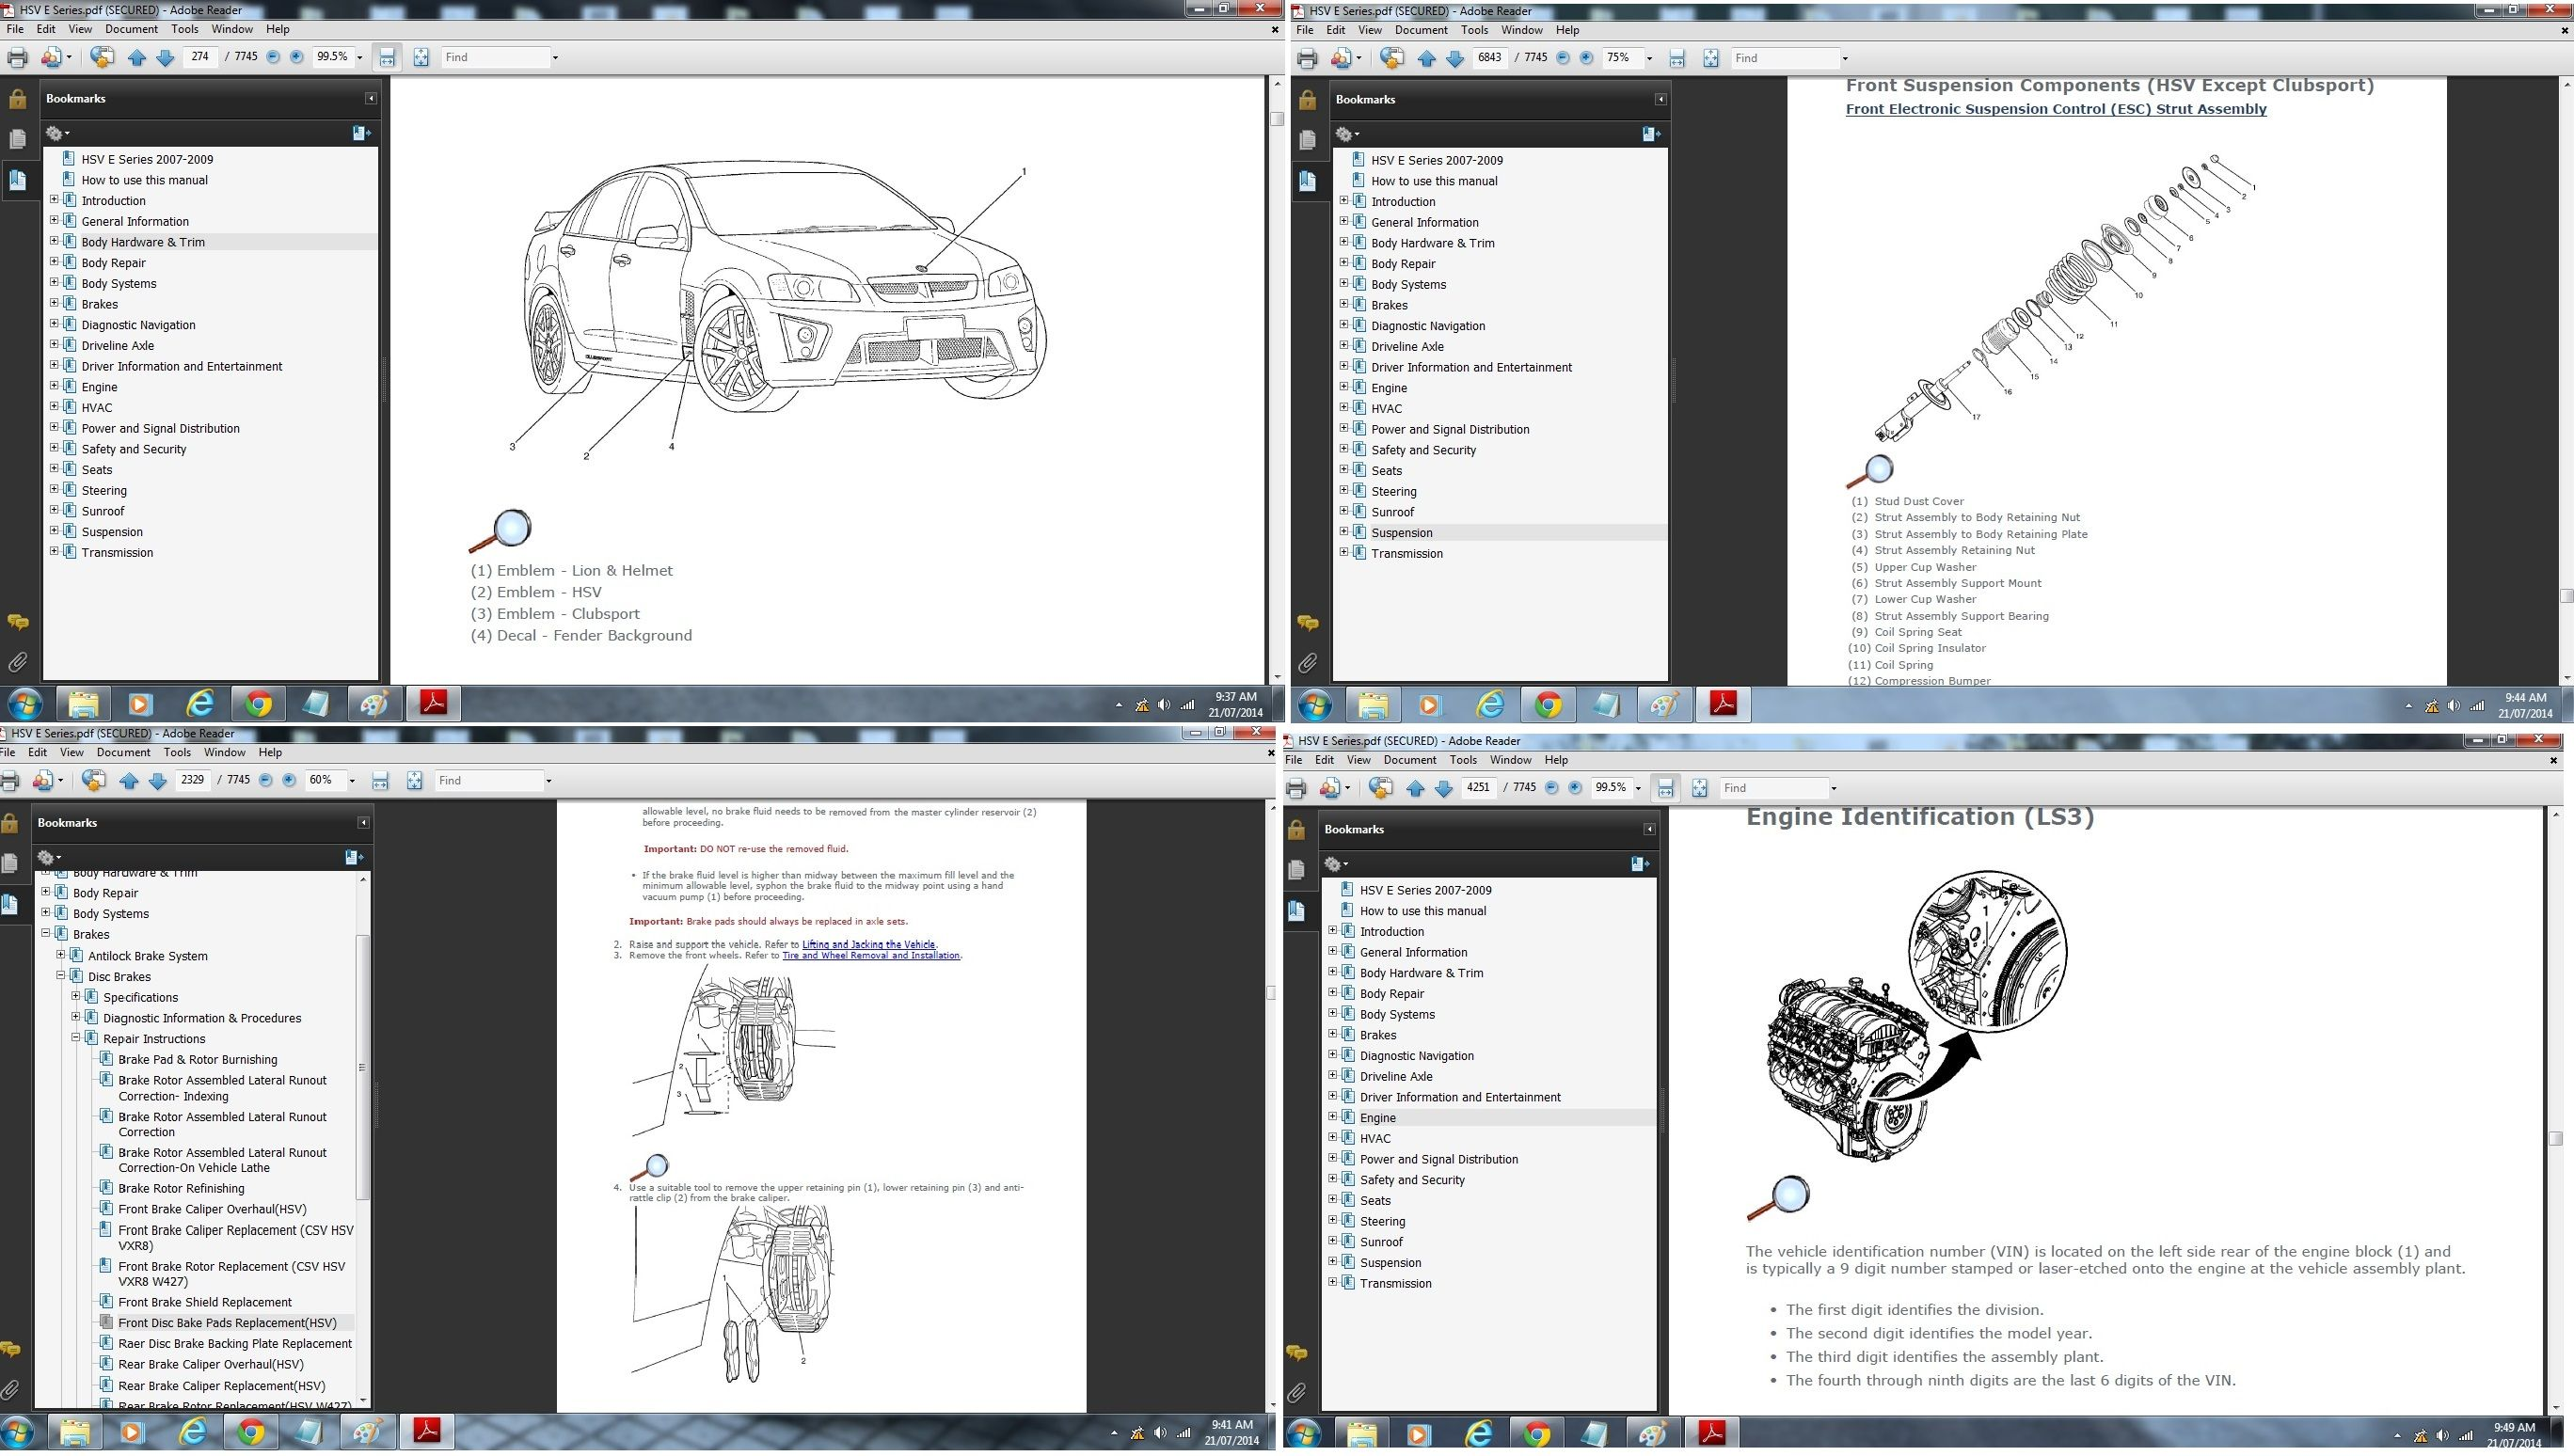 medium resolution of or select model from a z list below cruze owners pdf for colorado isuzu d max download holden cruze 2010 workshop manual pdf i m with you there